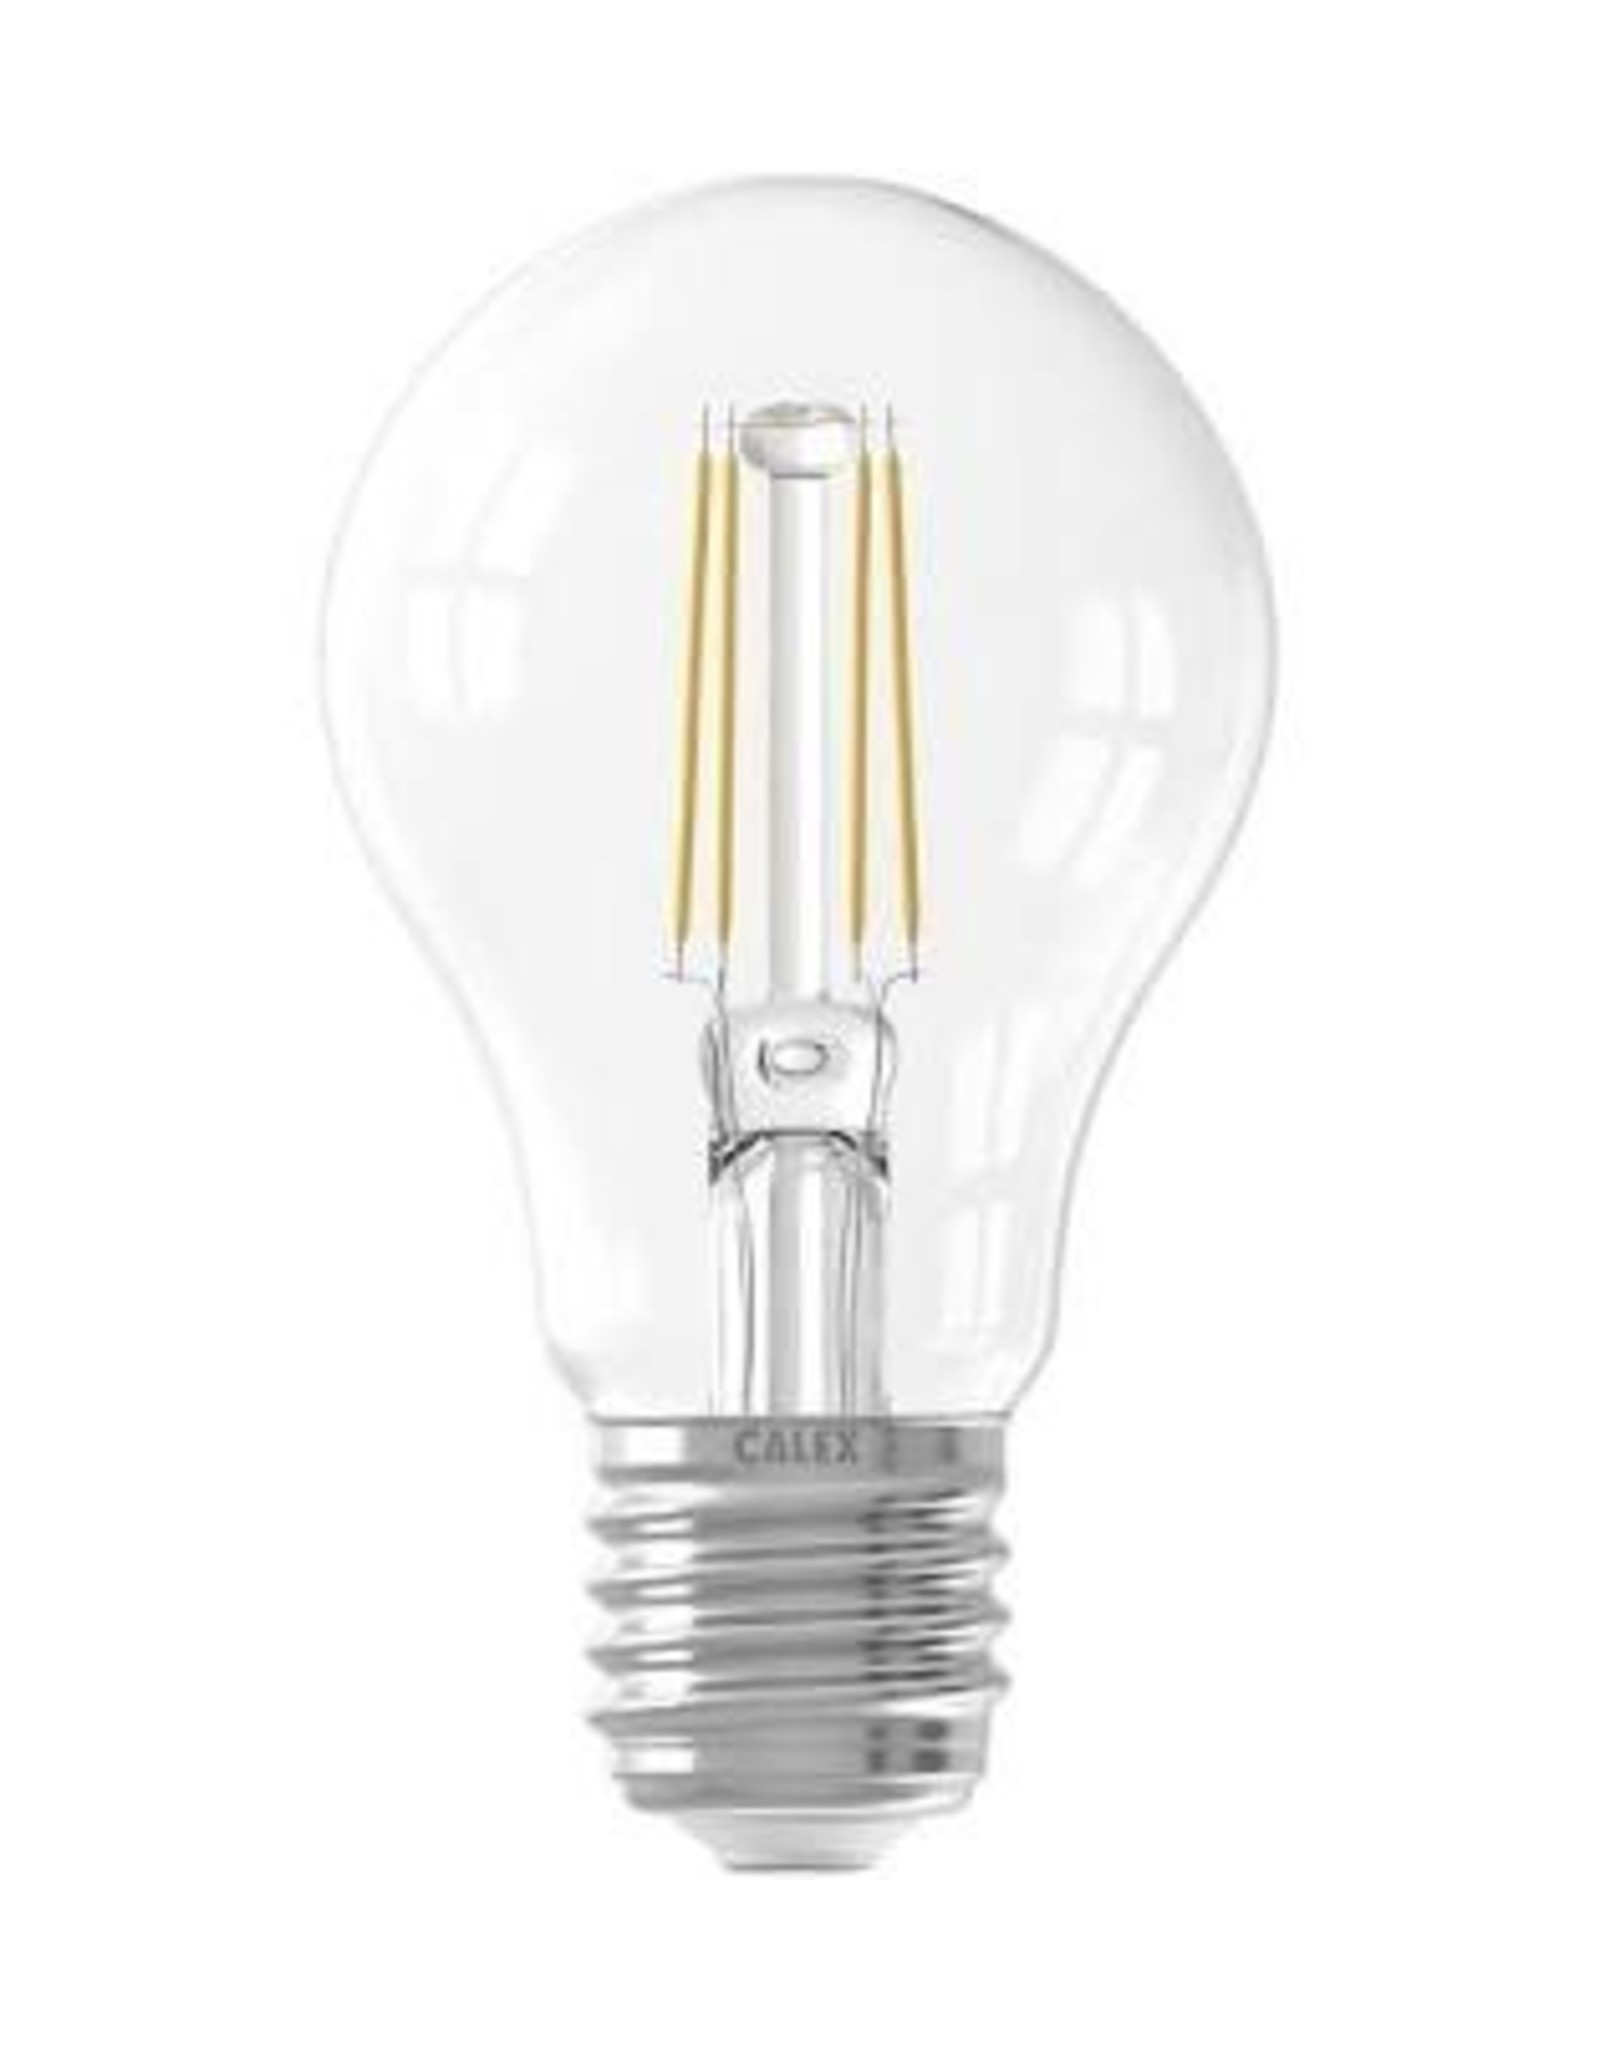 Calex LED Full Glass Filament GLS-lamp 220-240V 7W 810lm E27 A60, Clear 2700K CRI80 Dimmable, energy label A++